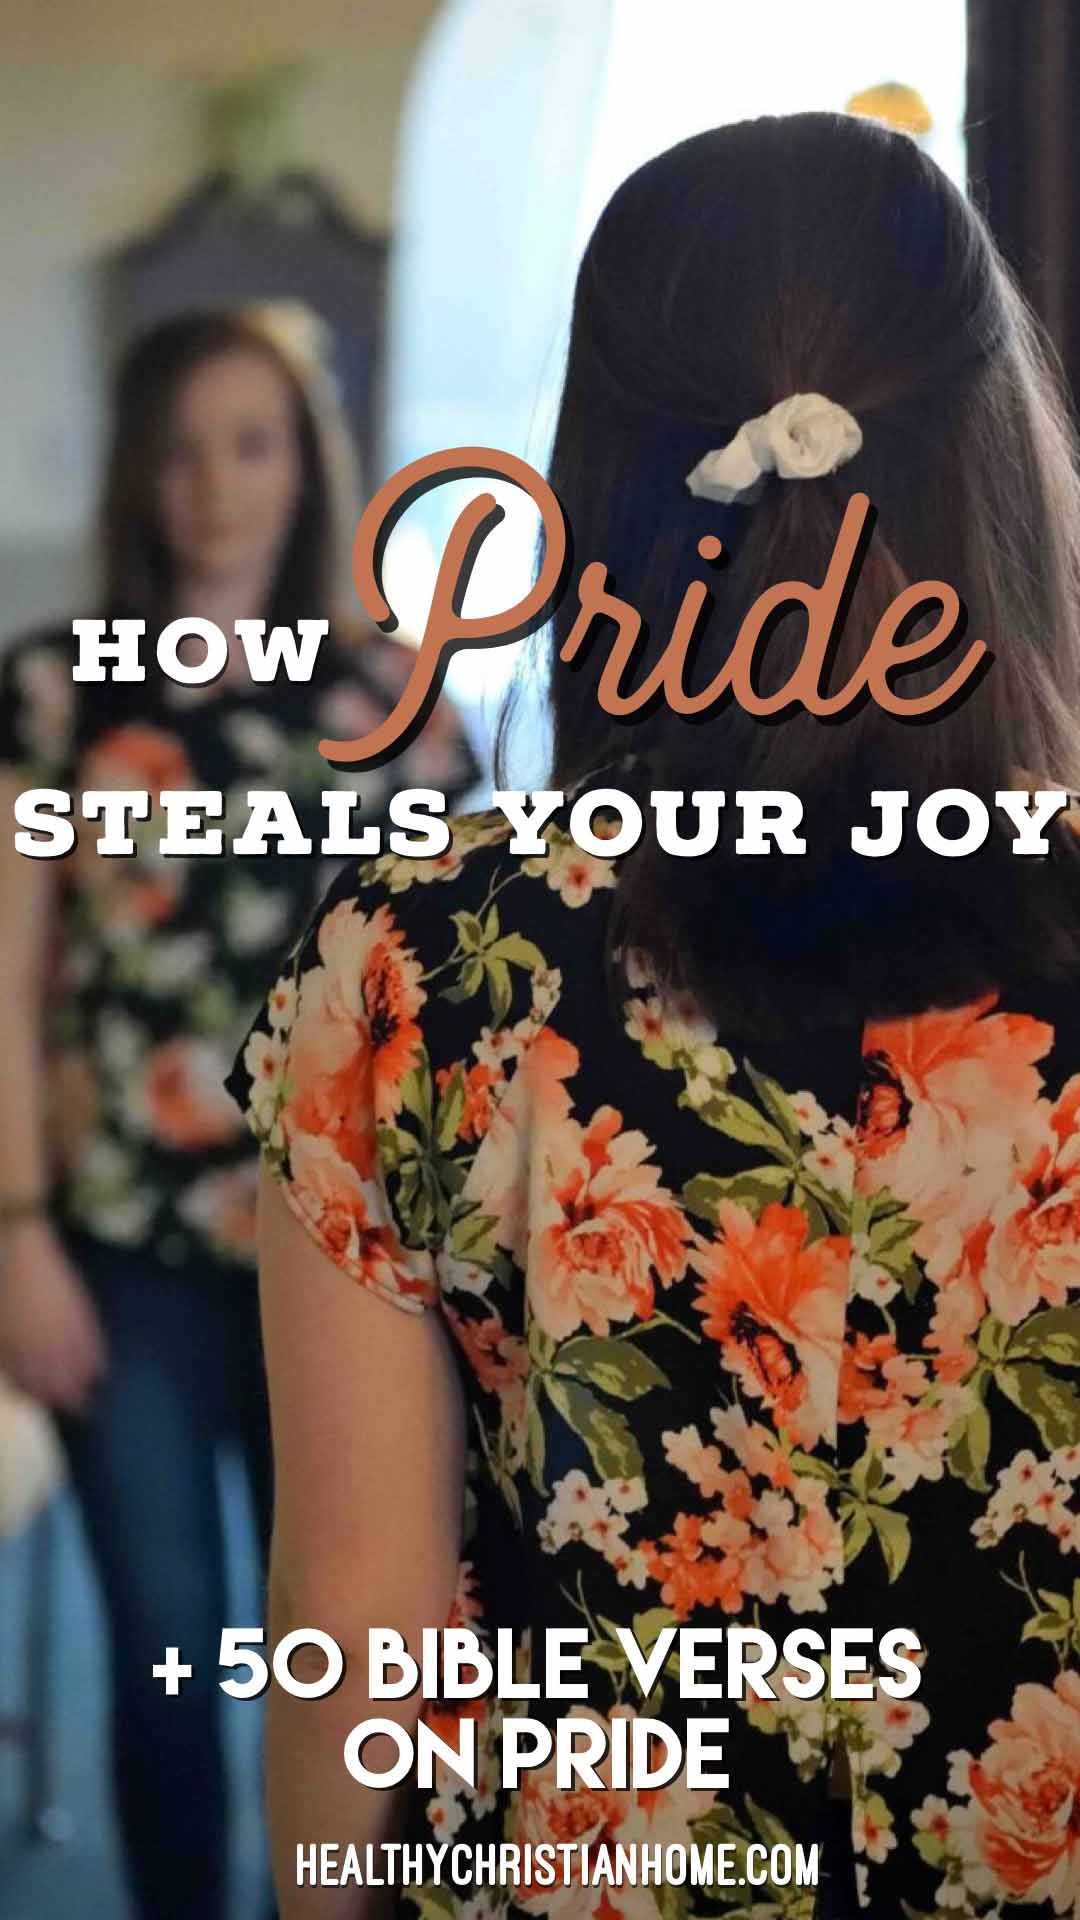 Picture of a girl in front of a mirror, with text overlay on how pride steals joy.